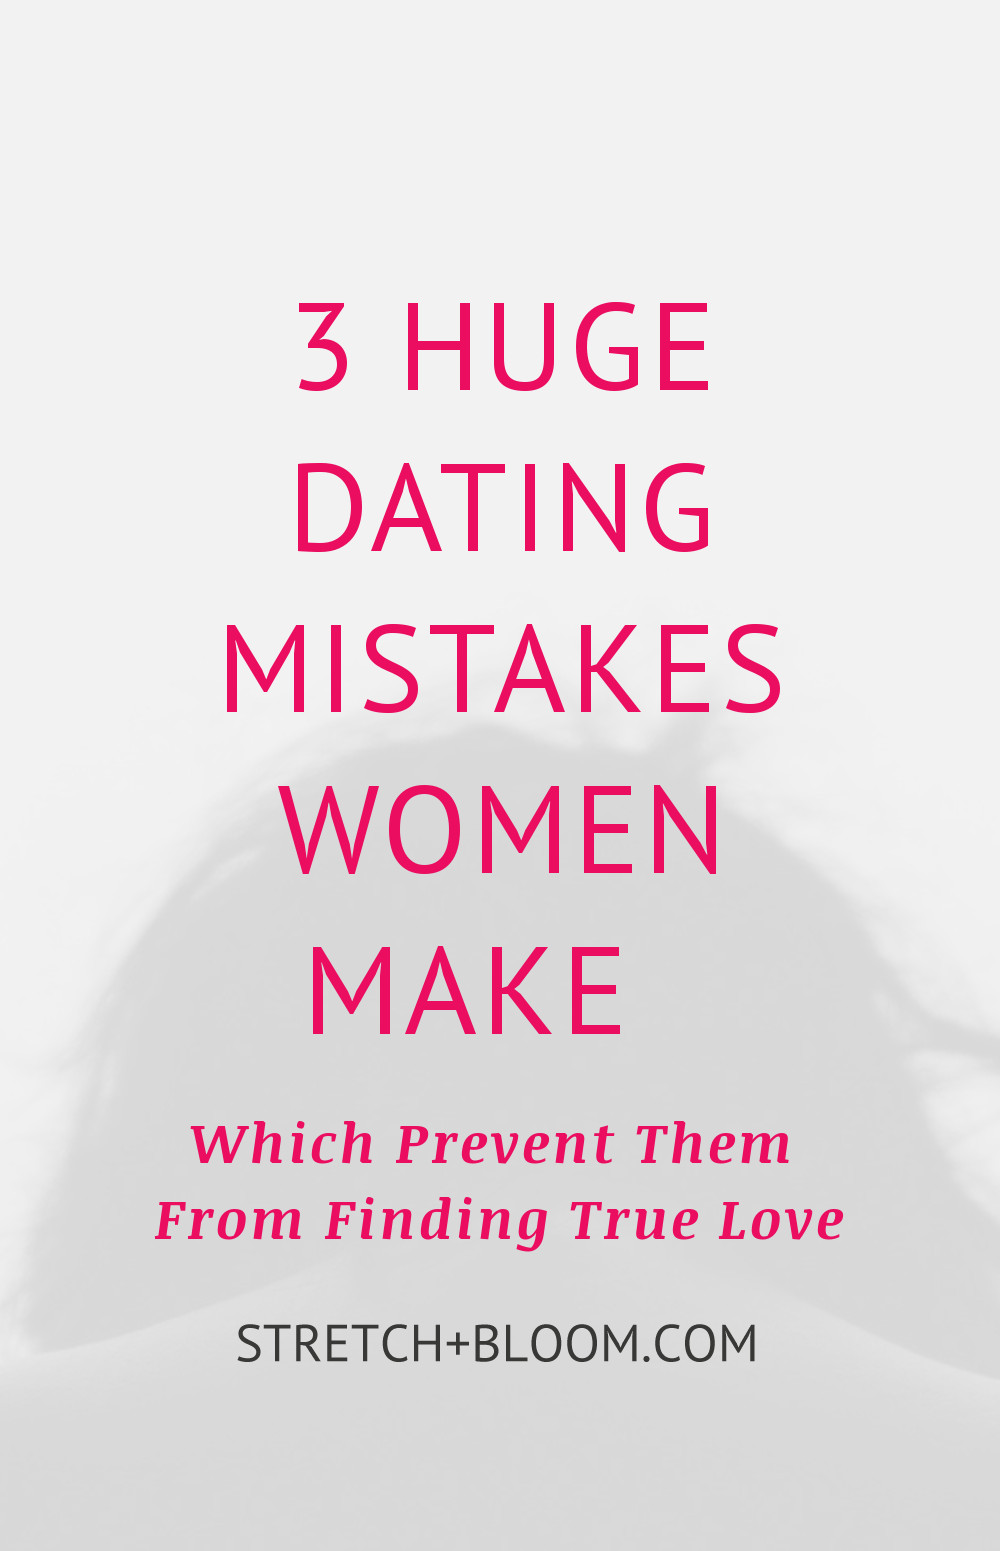 The Dating is a bit like a jungle these days. For many people finding true love is hard. It gets even harder when you make crucial mistakes that pushe love further awy from you. Click the pin to learn 3 crucial dating mistakes to avoid if you're looking for true love